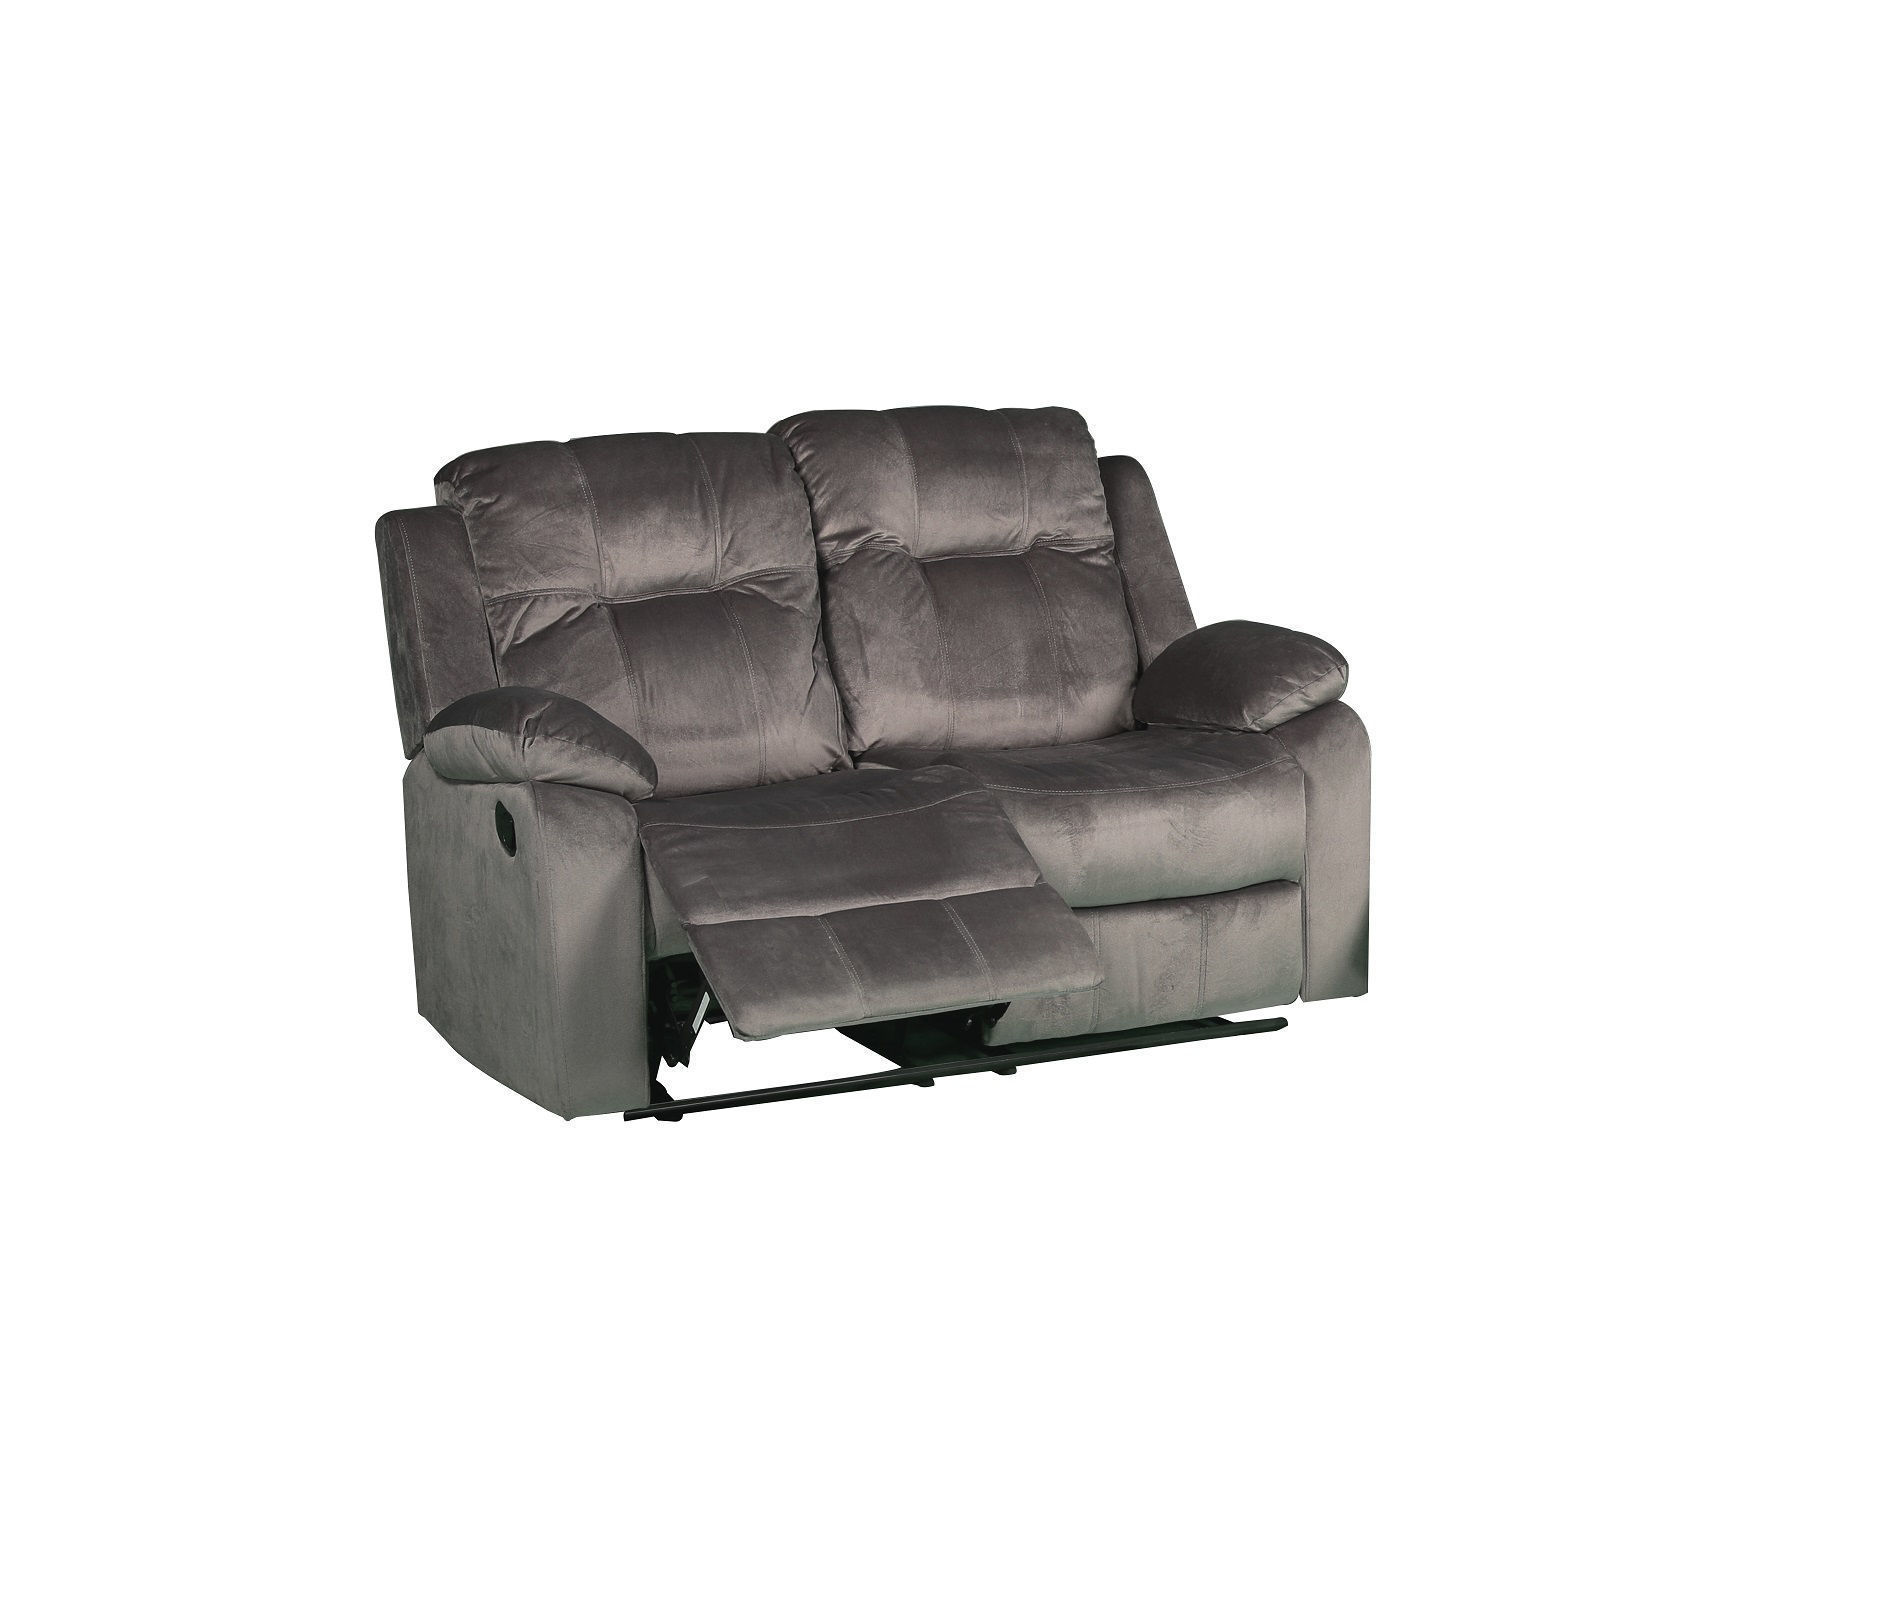 Picture of URBINO OYSTER RECLINING LIVING